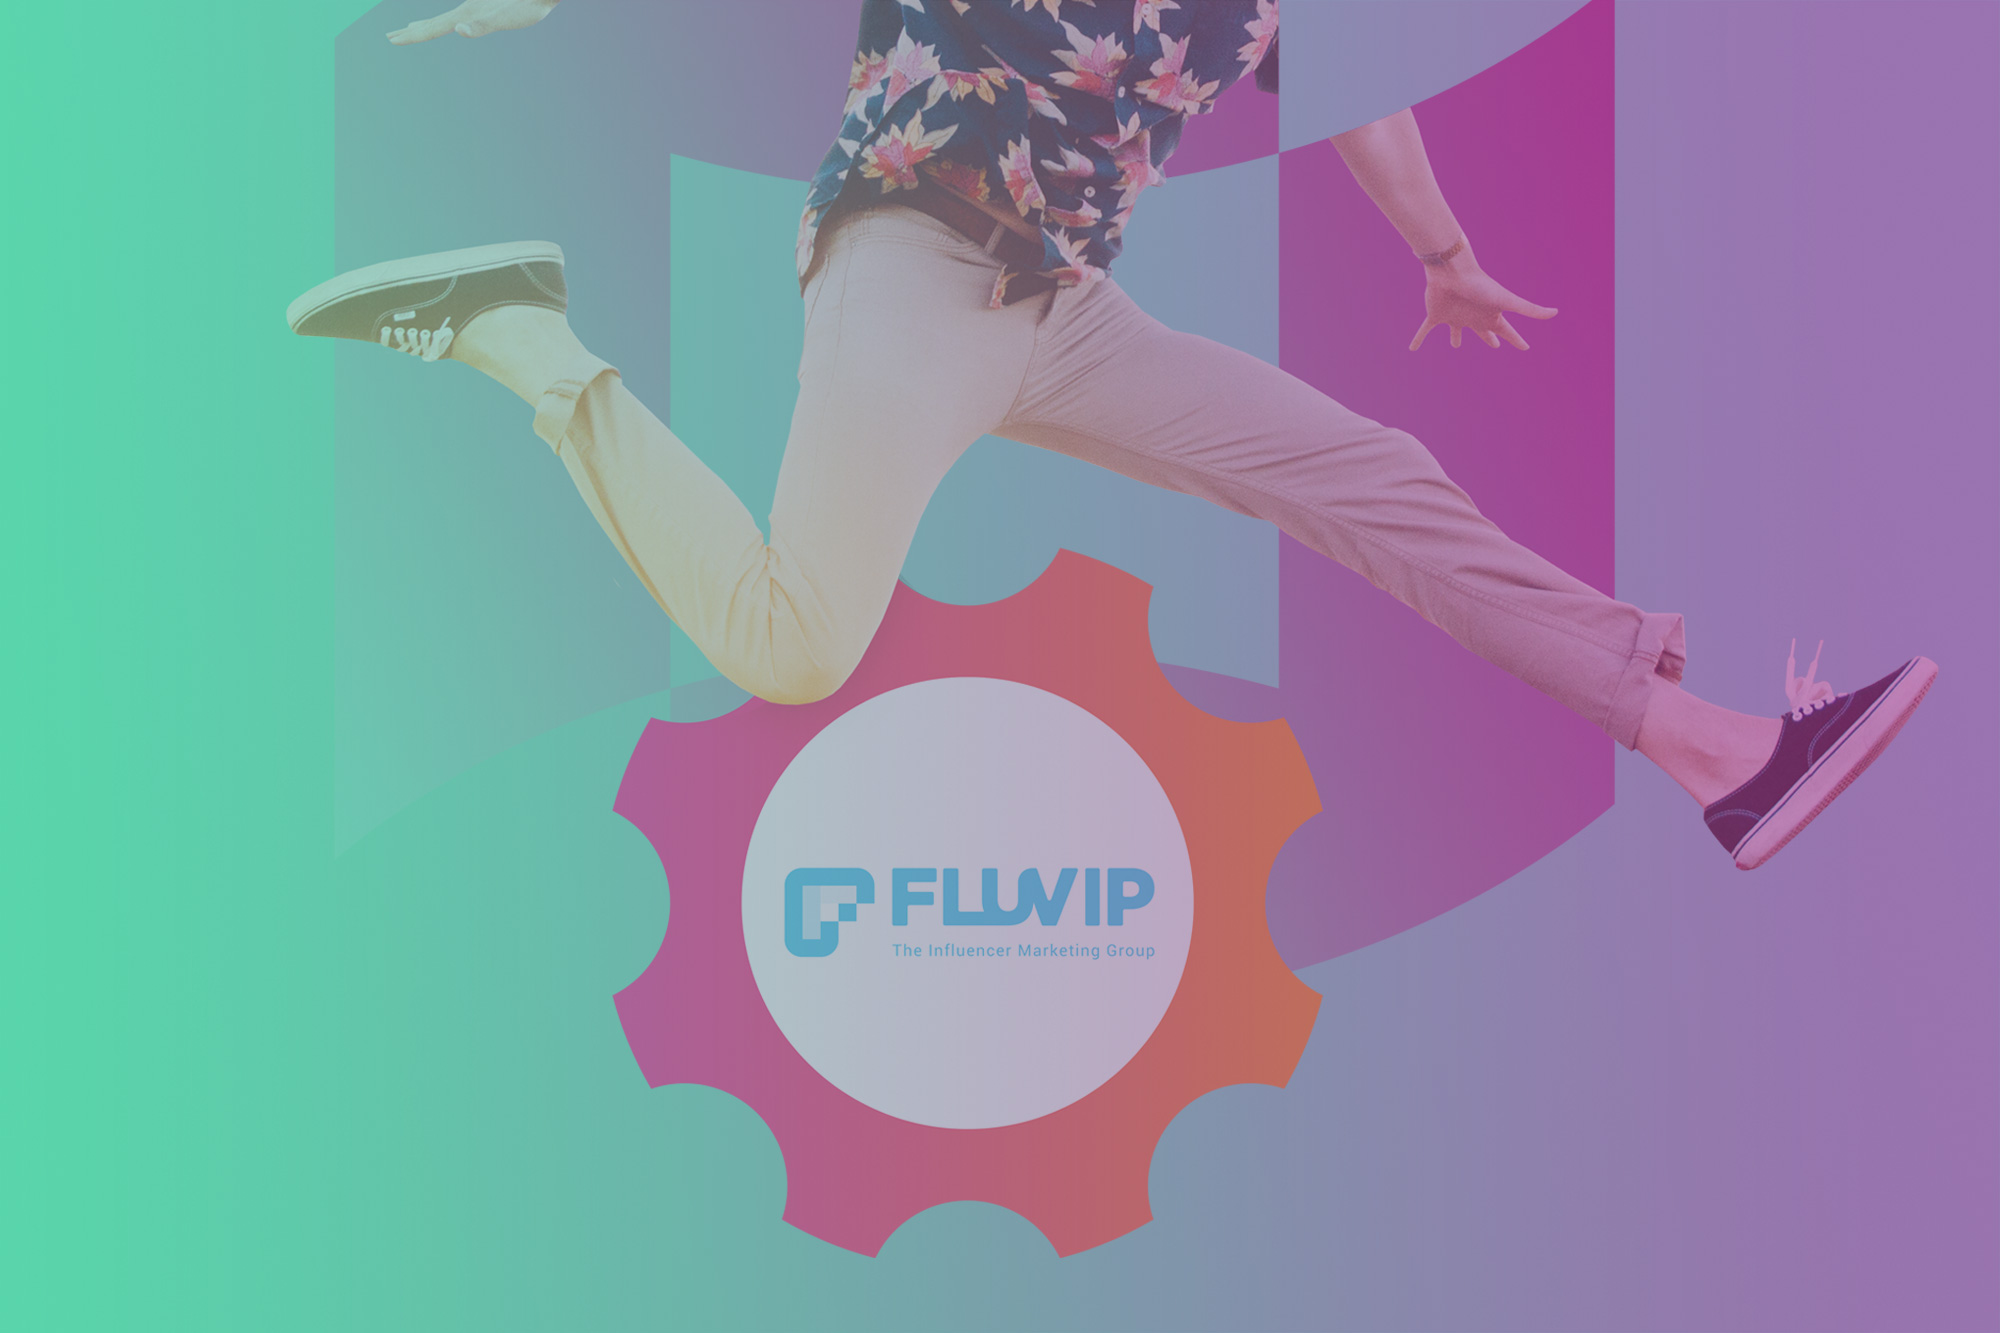 IZEA Announces Letter of Intent to Acquire LATAM Influencer Marketing Company FLUVIP at CES 2019